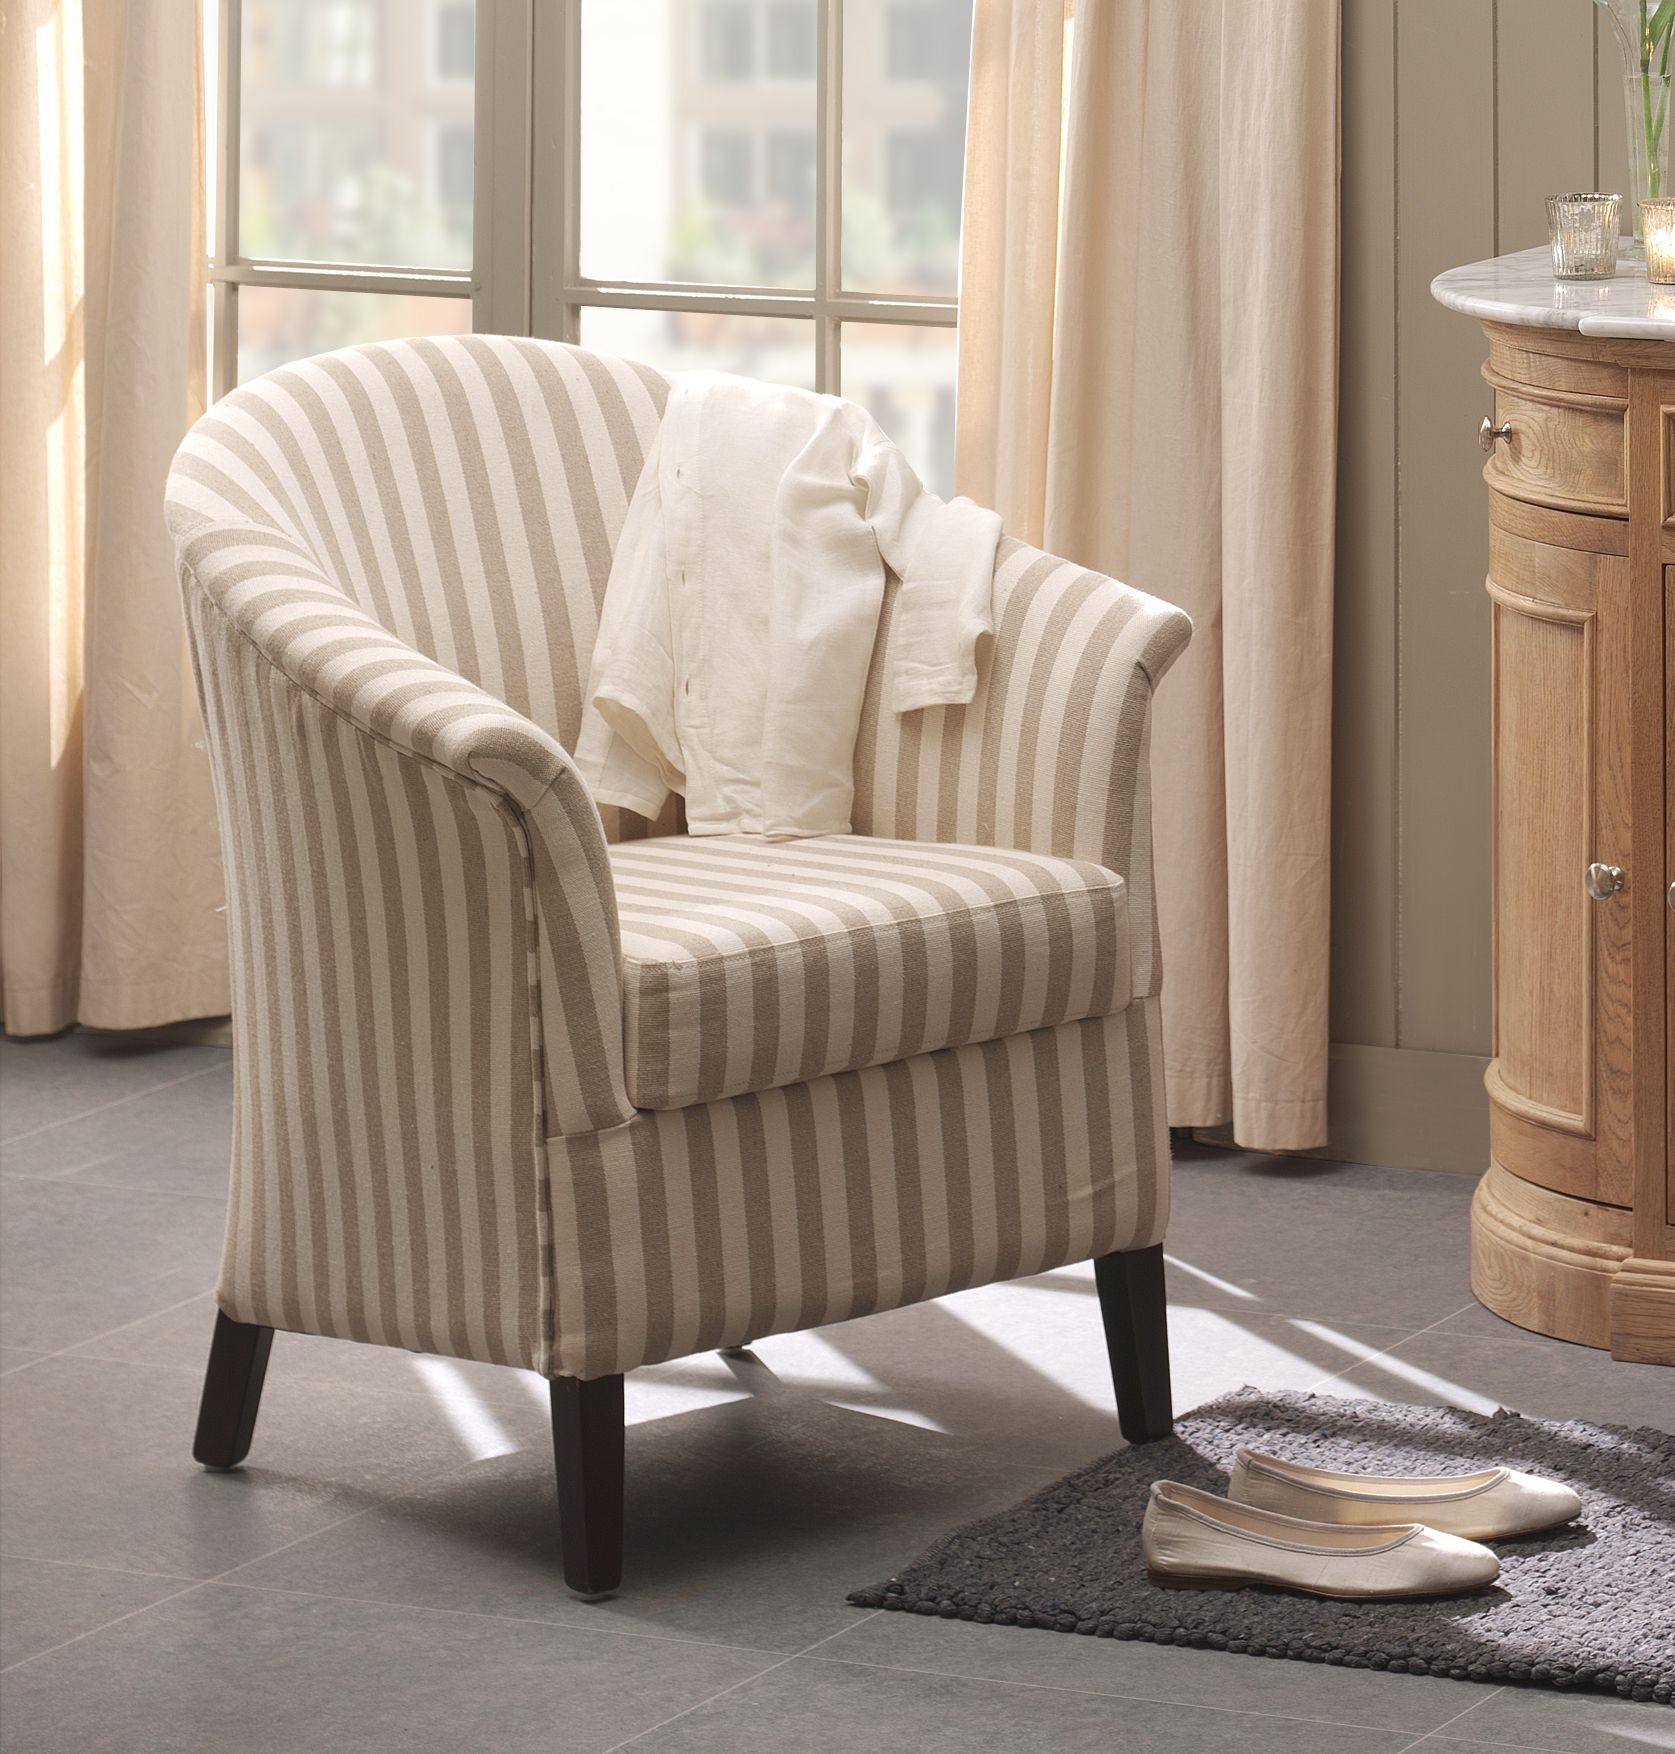 Tissus Rayures Fauteuils Fauteuil Cabriolet Blanc Crème Rayures Mira